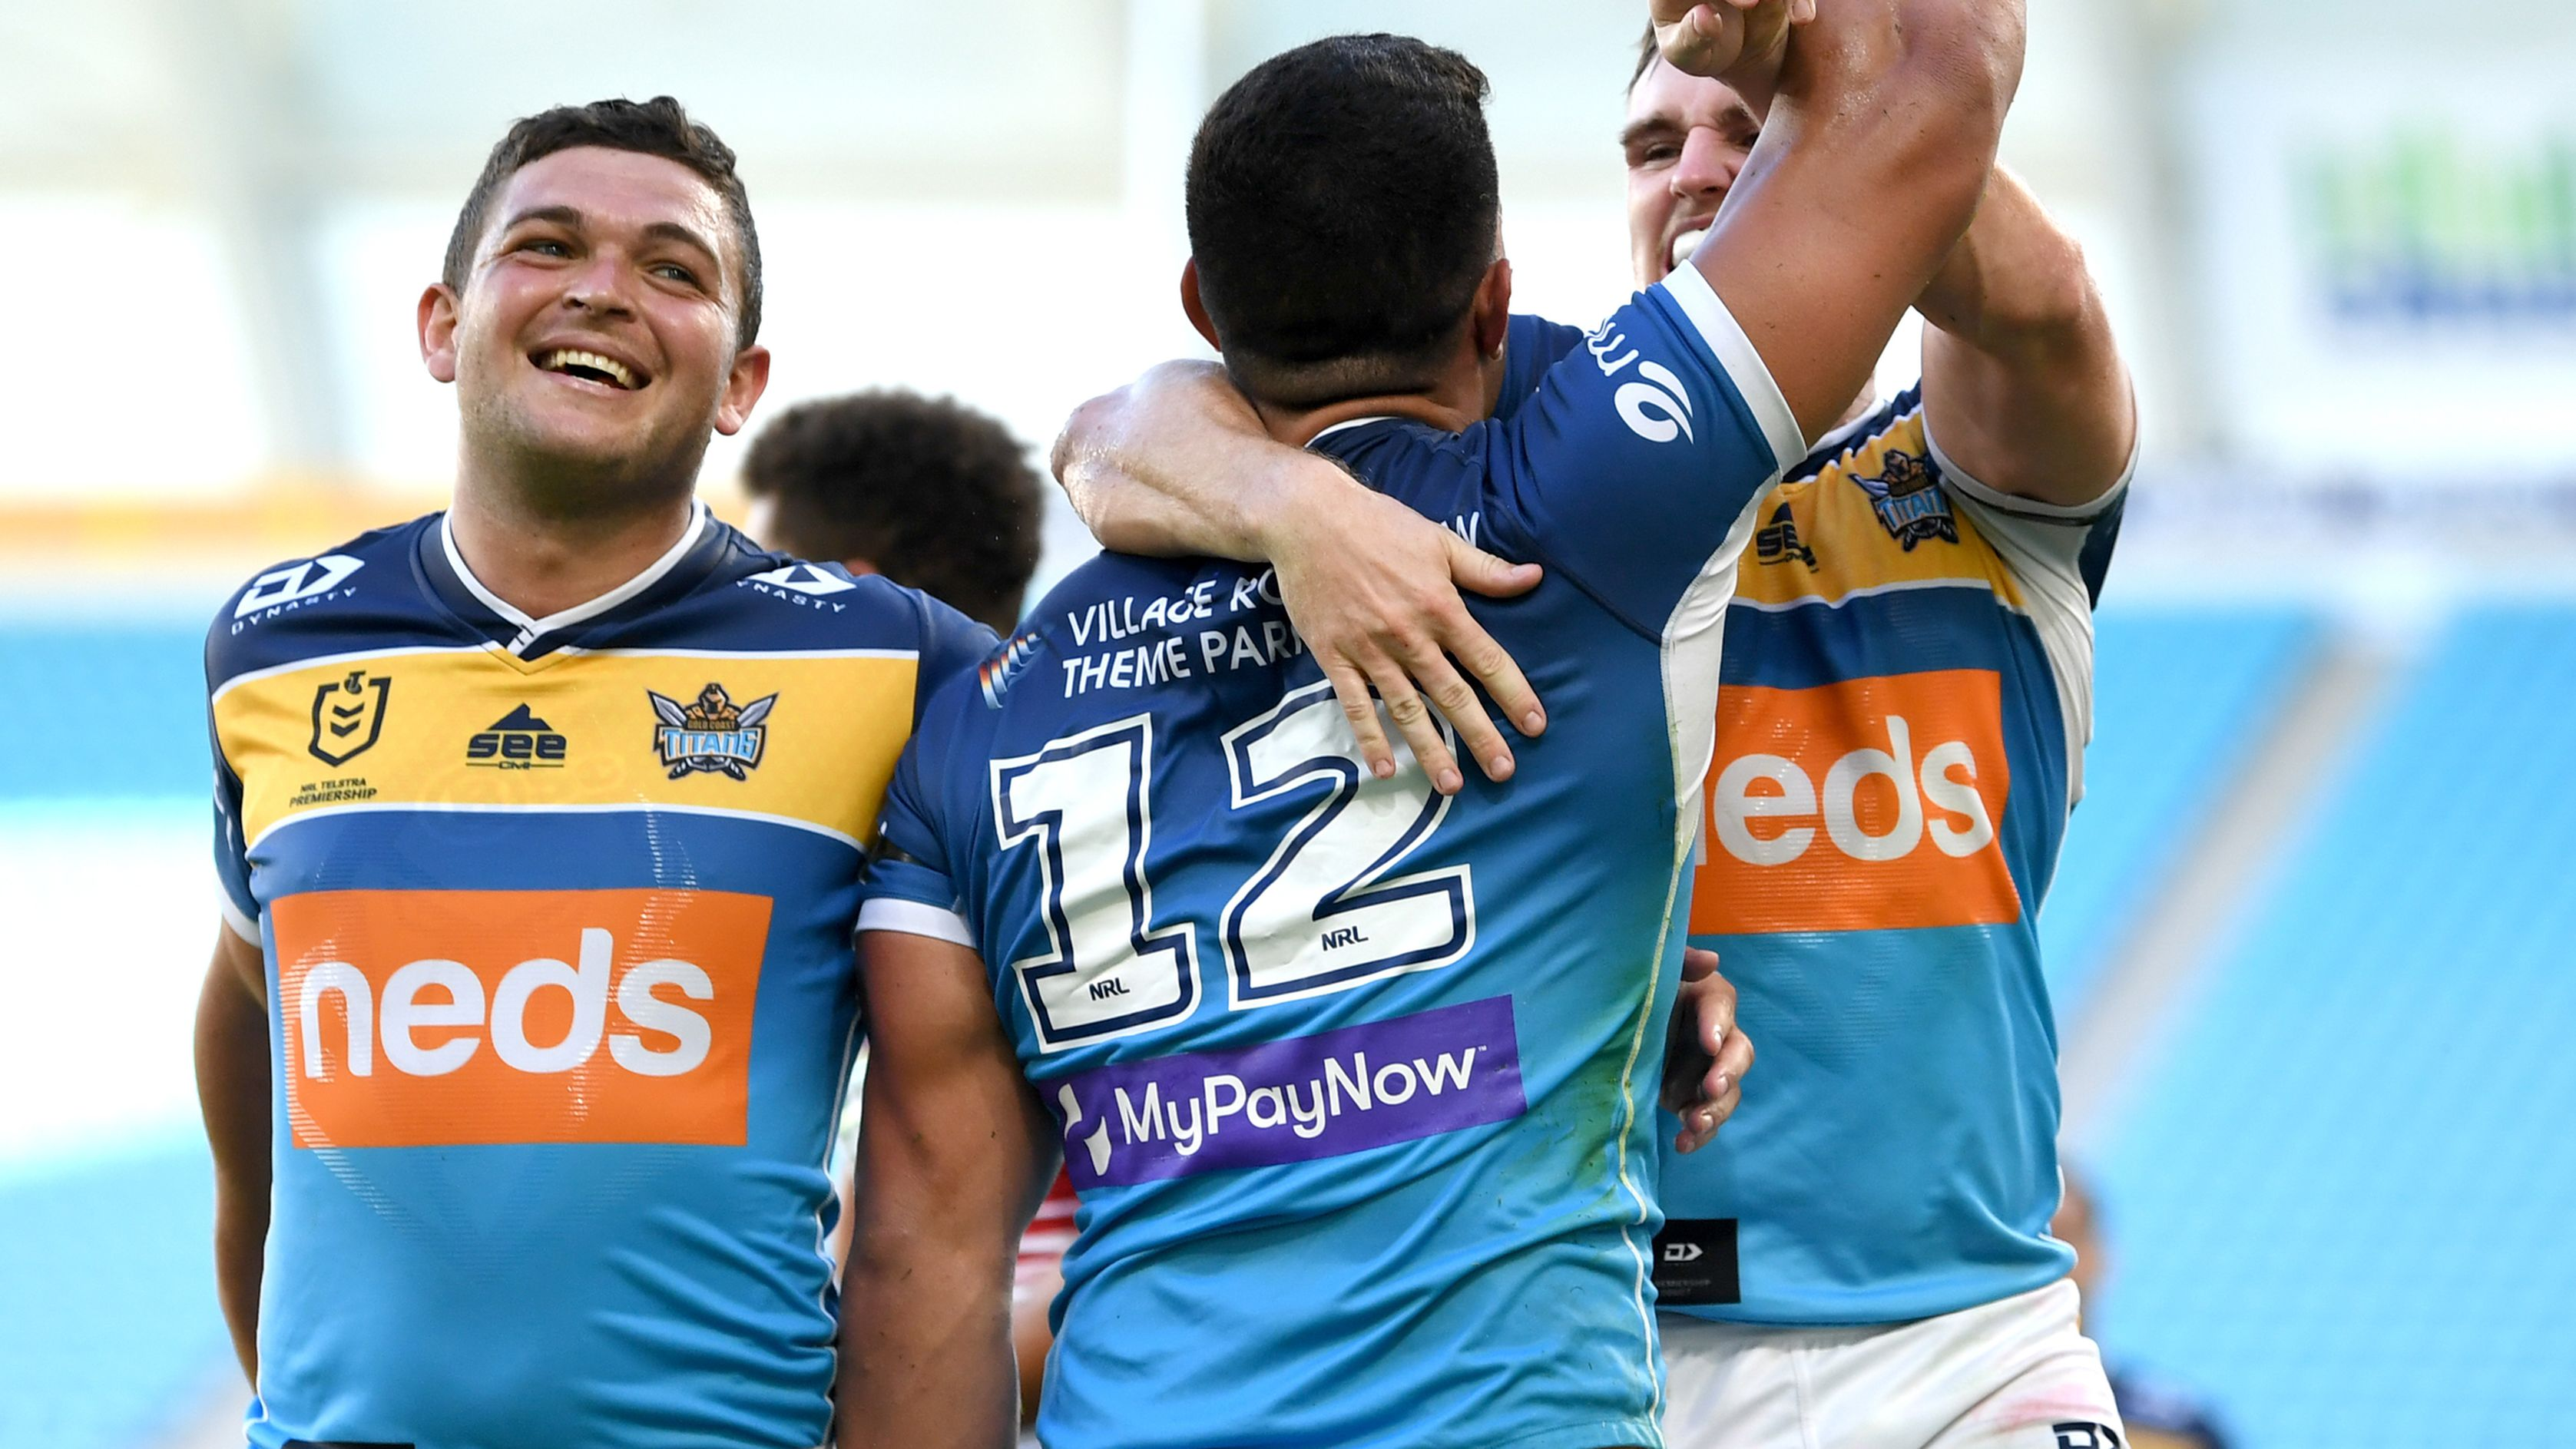 'Only the beginning': Rampant David Fifita sends ominous warning to NRL rivals after hat-trick